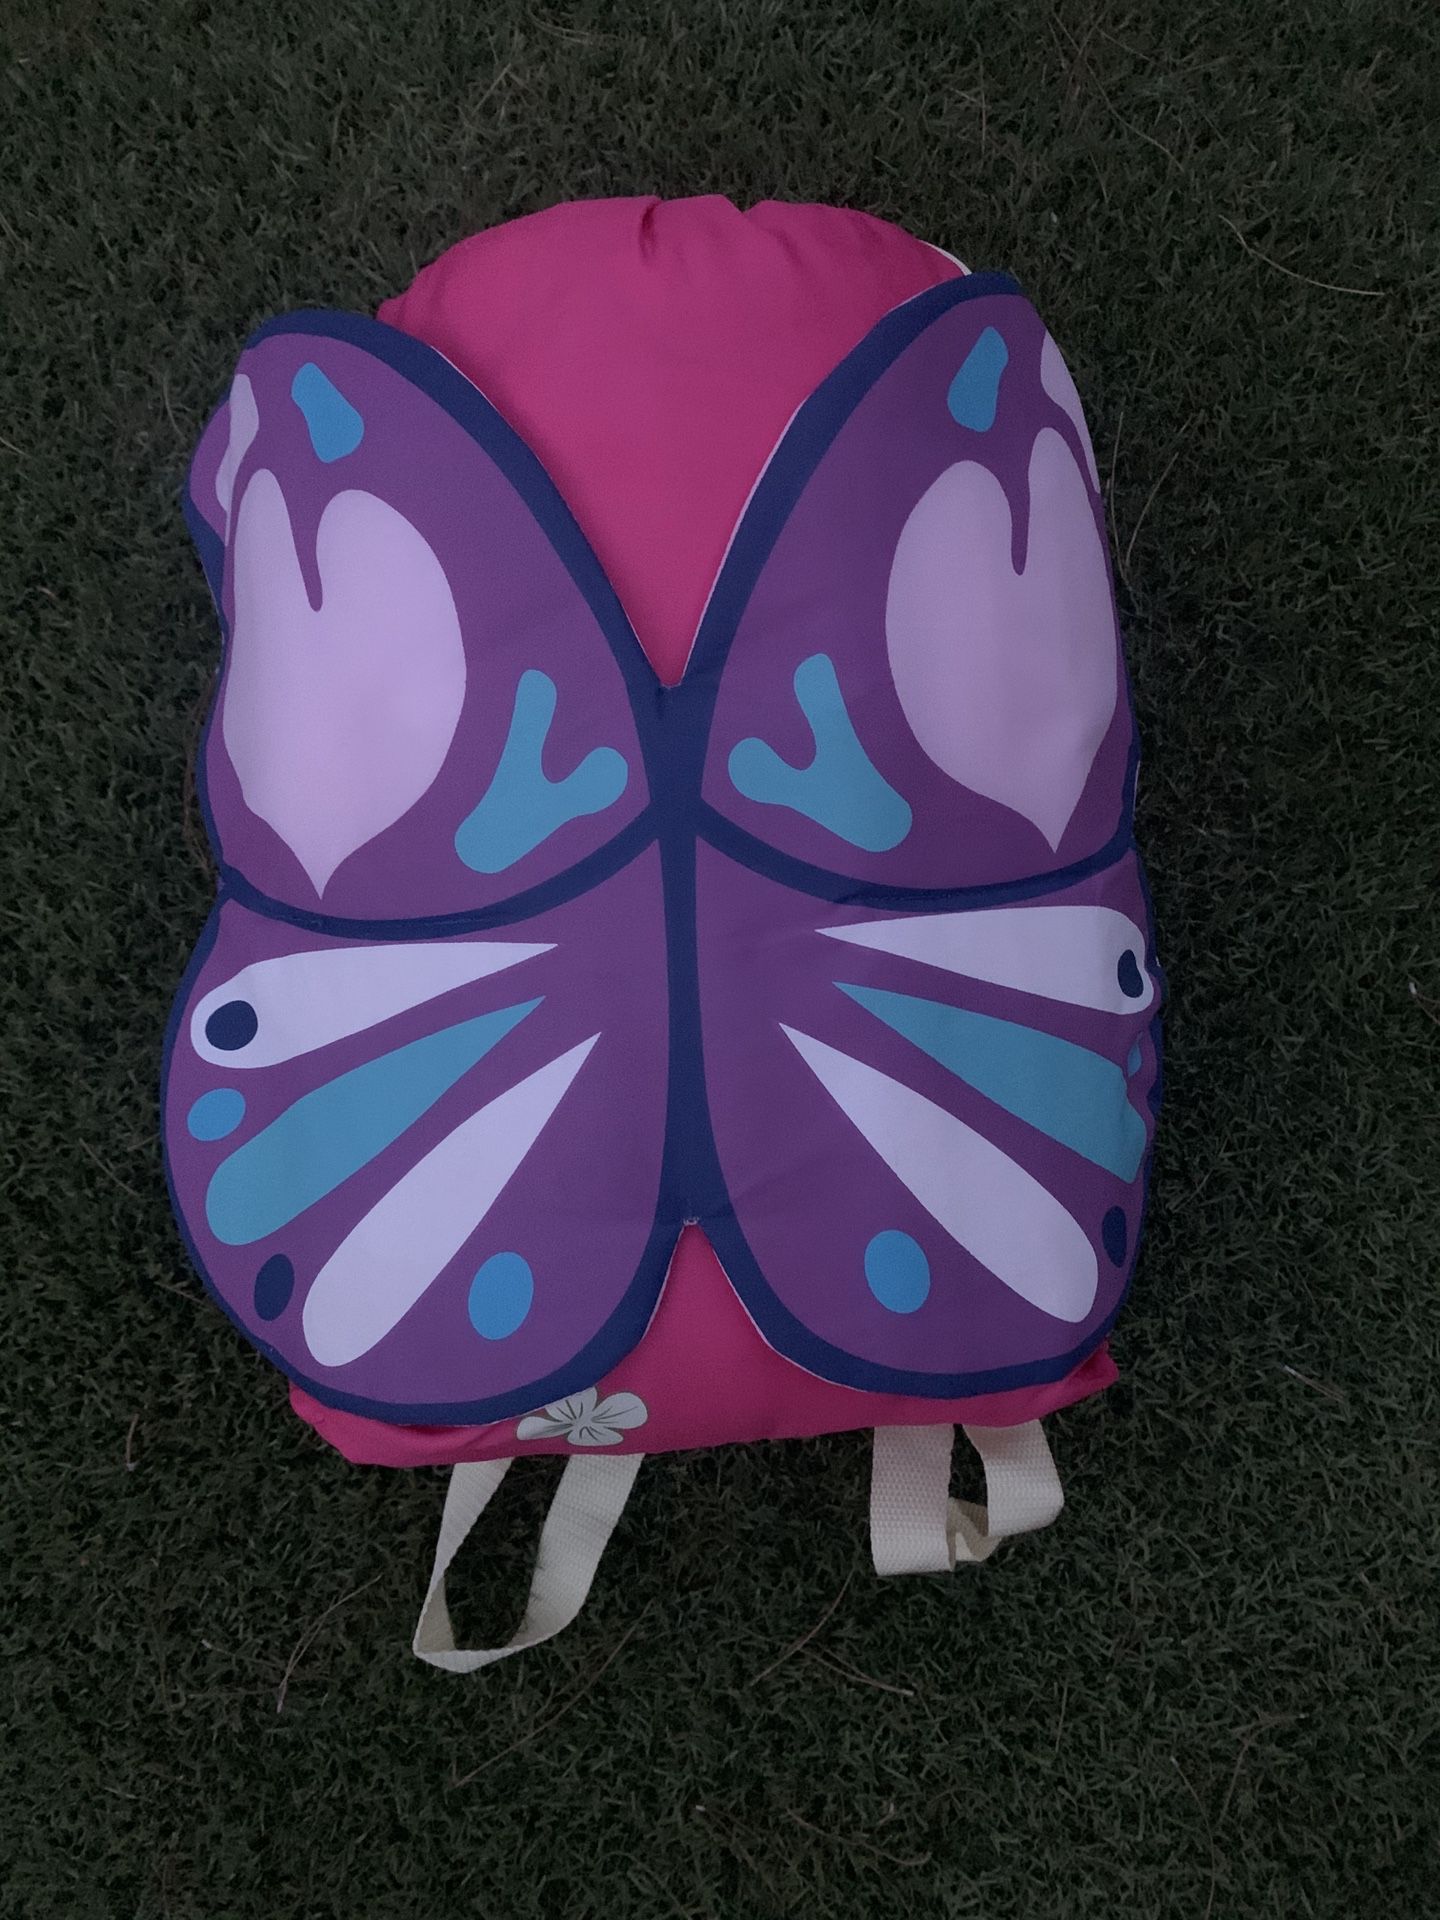 GIRLS BUTTERFLY SLEEPING BAG 2 FT IN X 4 FT 7 IN Like New - just used once. Comes with backpack. Feel free to message me.